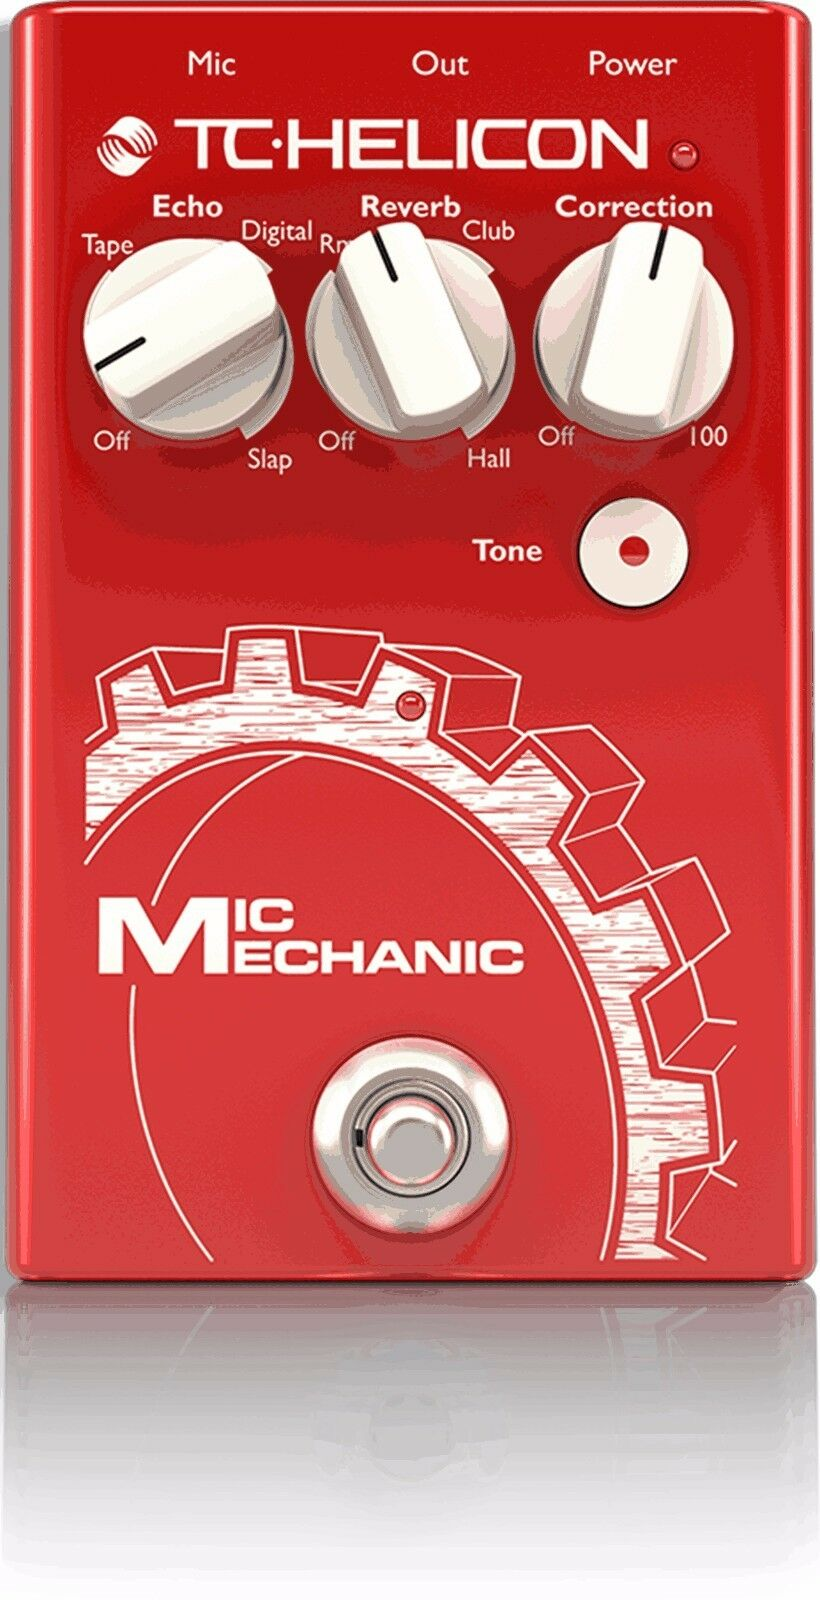 New TC-Helicon VoiceTone Mic Mechanic 2 Vocal Reverb/Delay/Pitch Correction